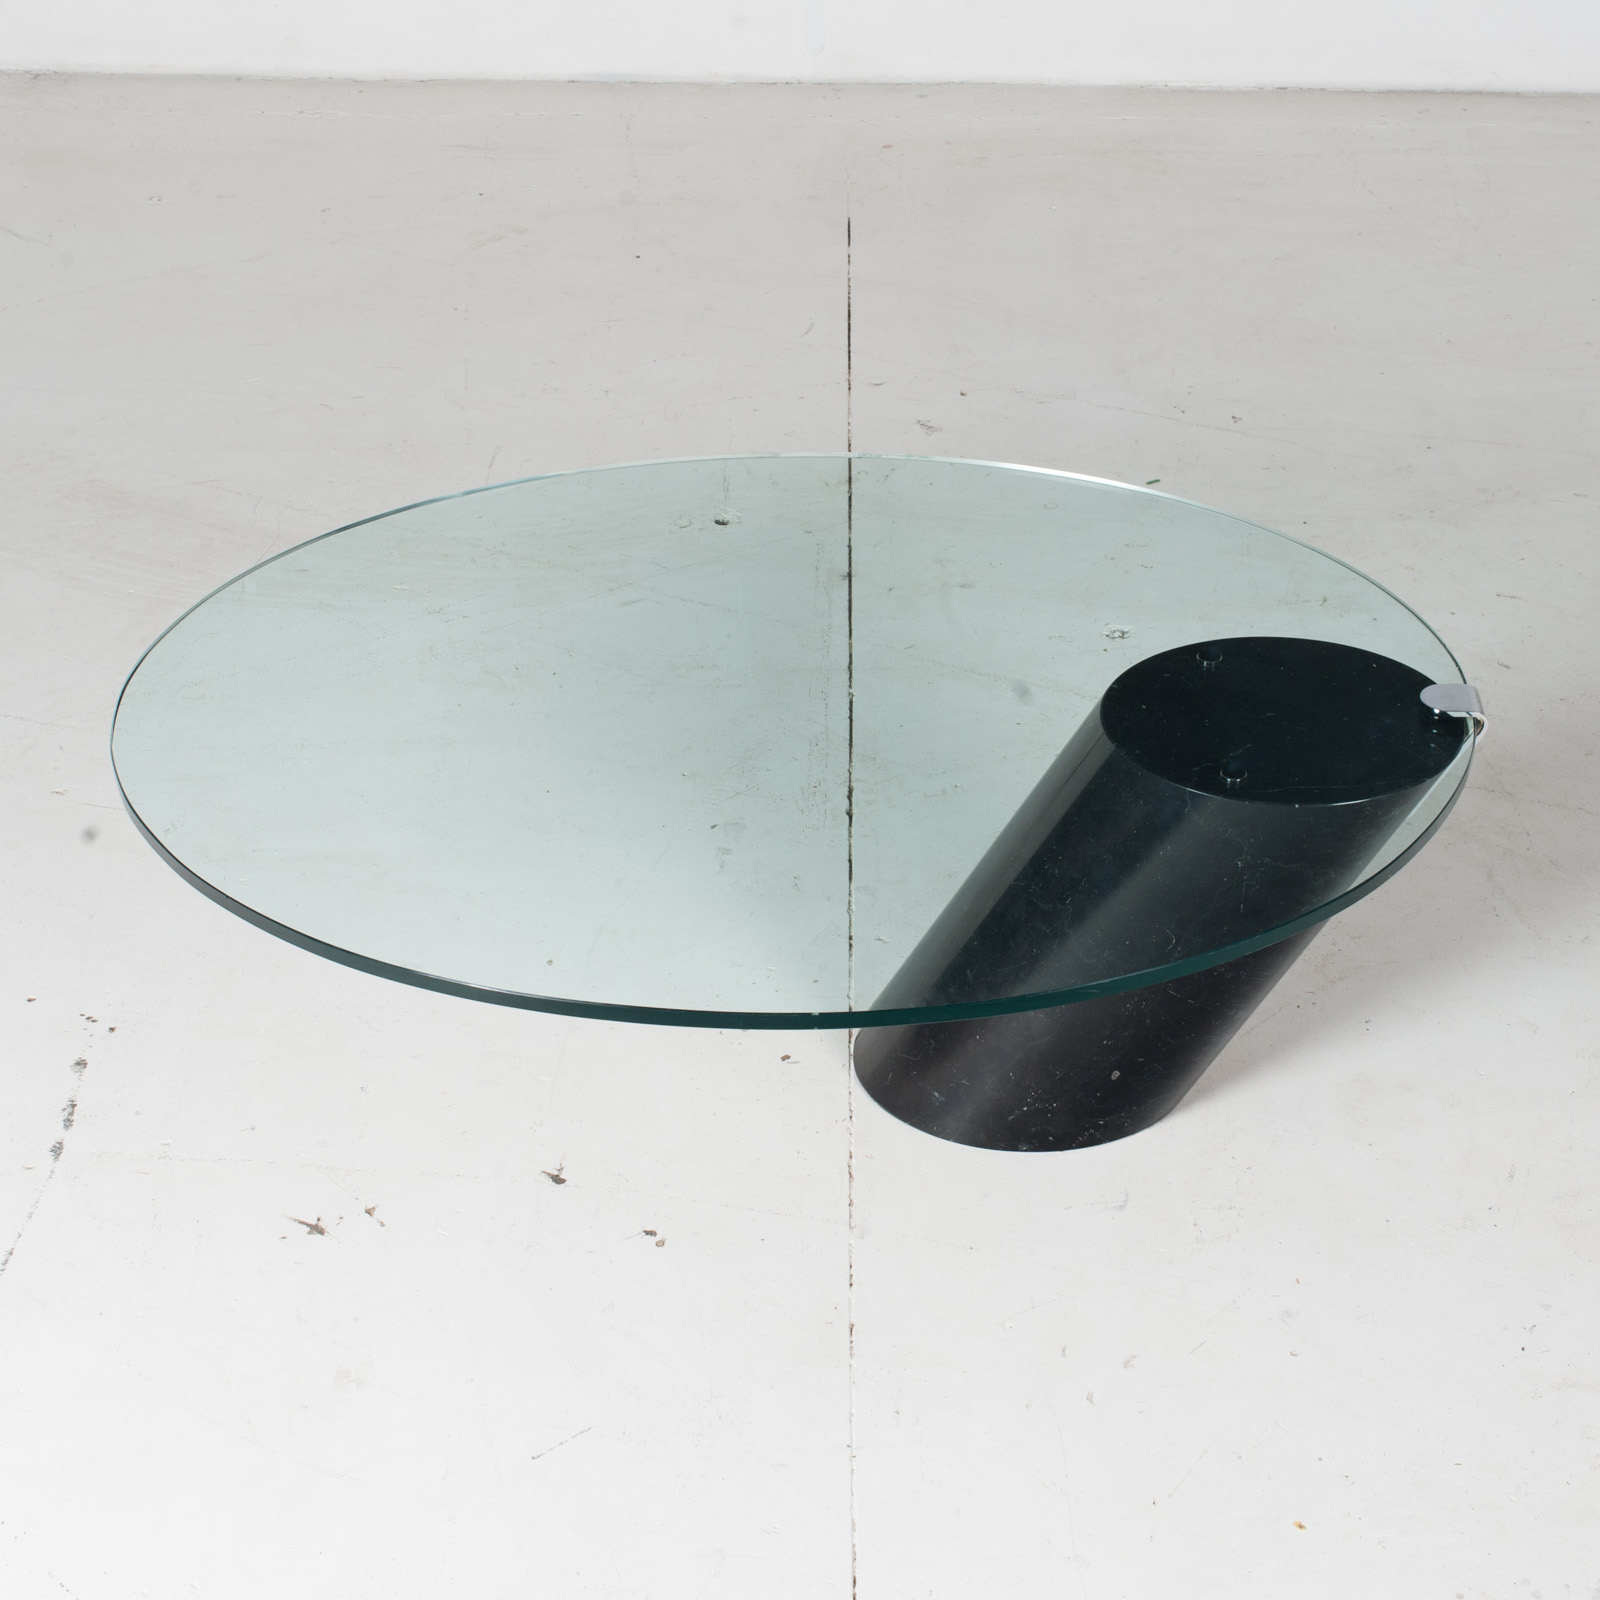 K1000 Oval Coffee Table By Ronald Schmitt In Glass And Black Marble, 1974, Switzerland3